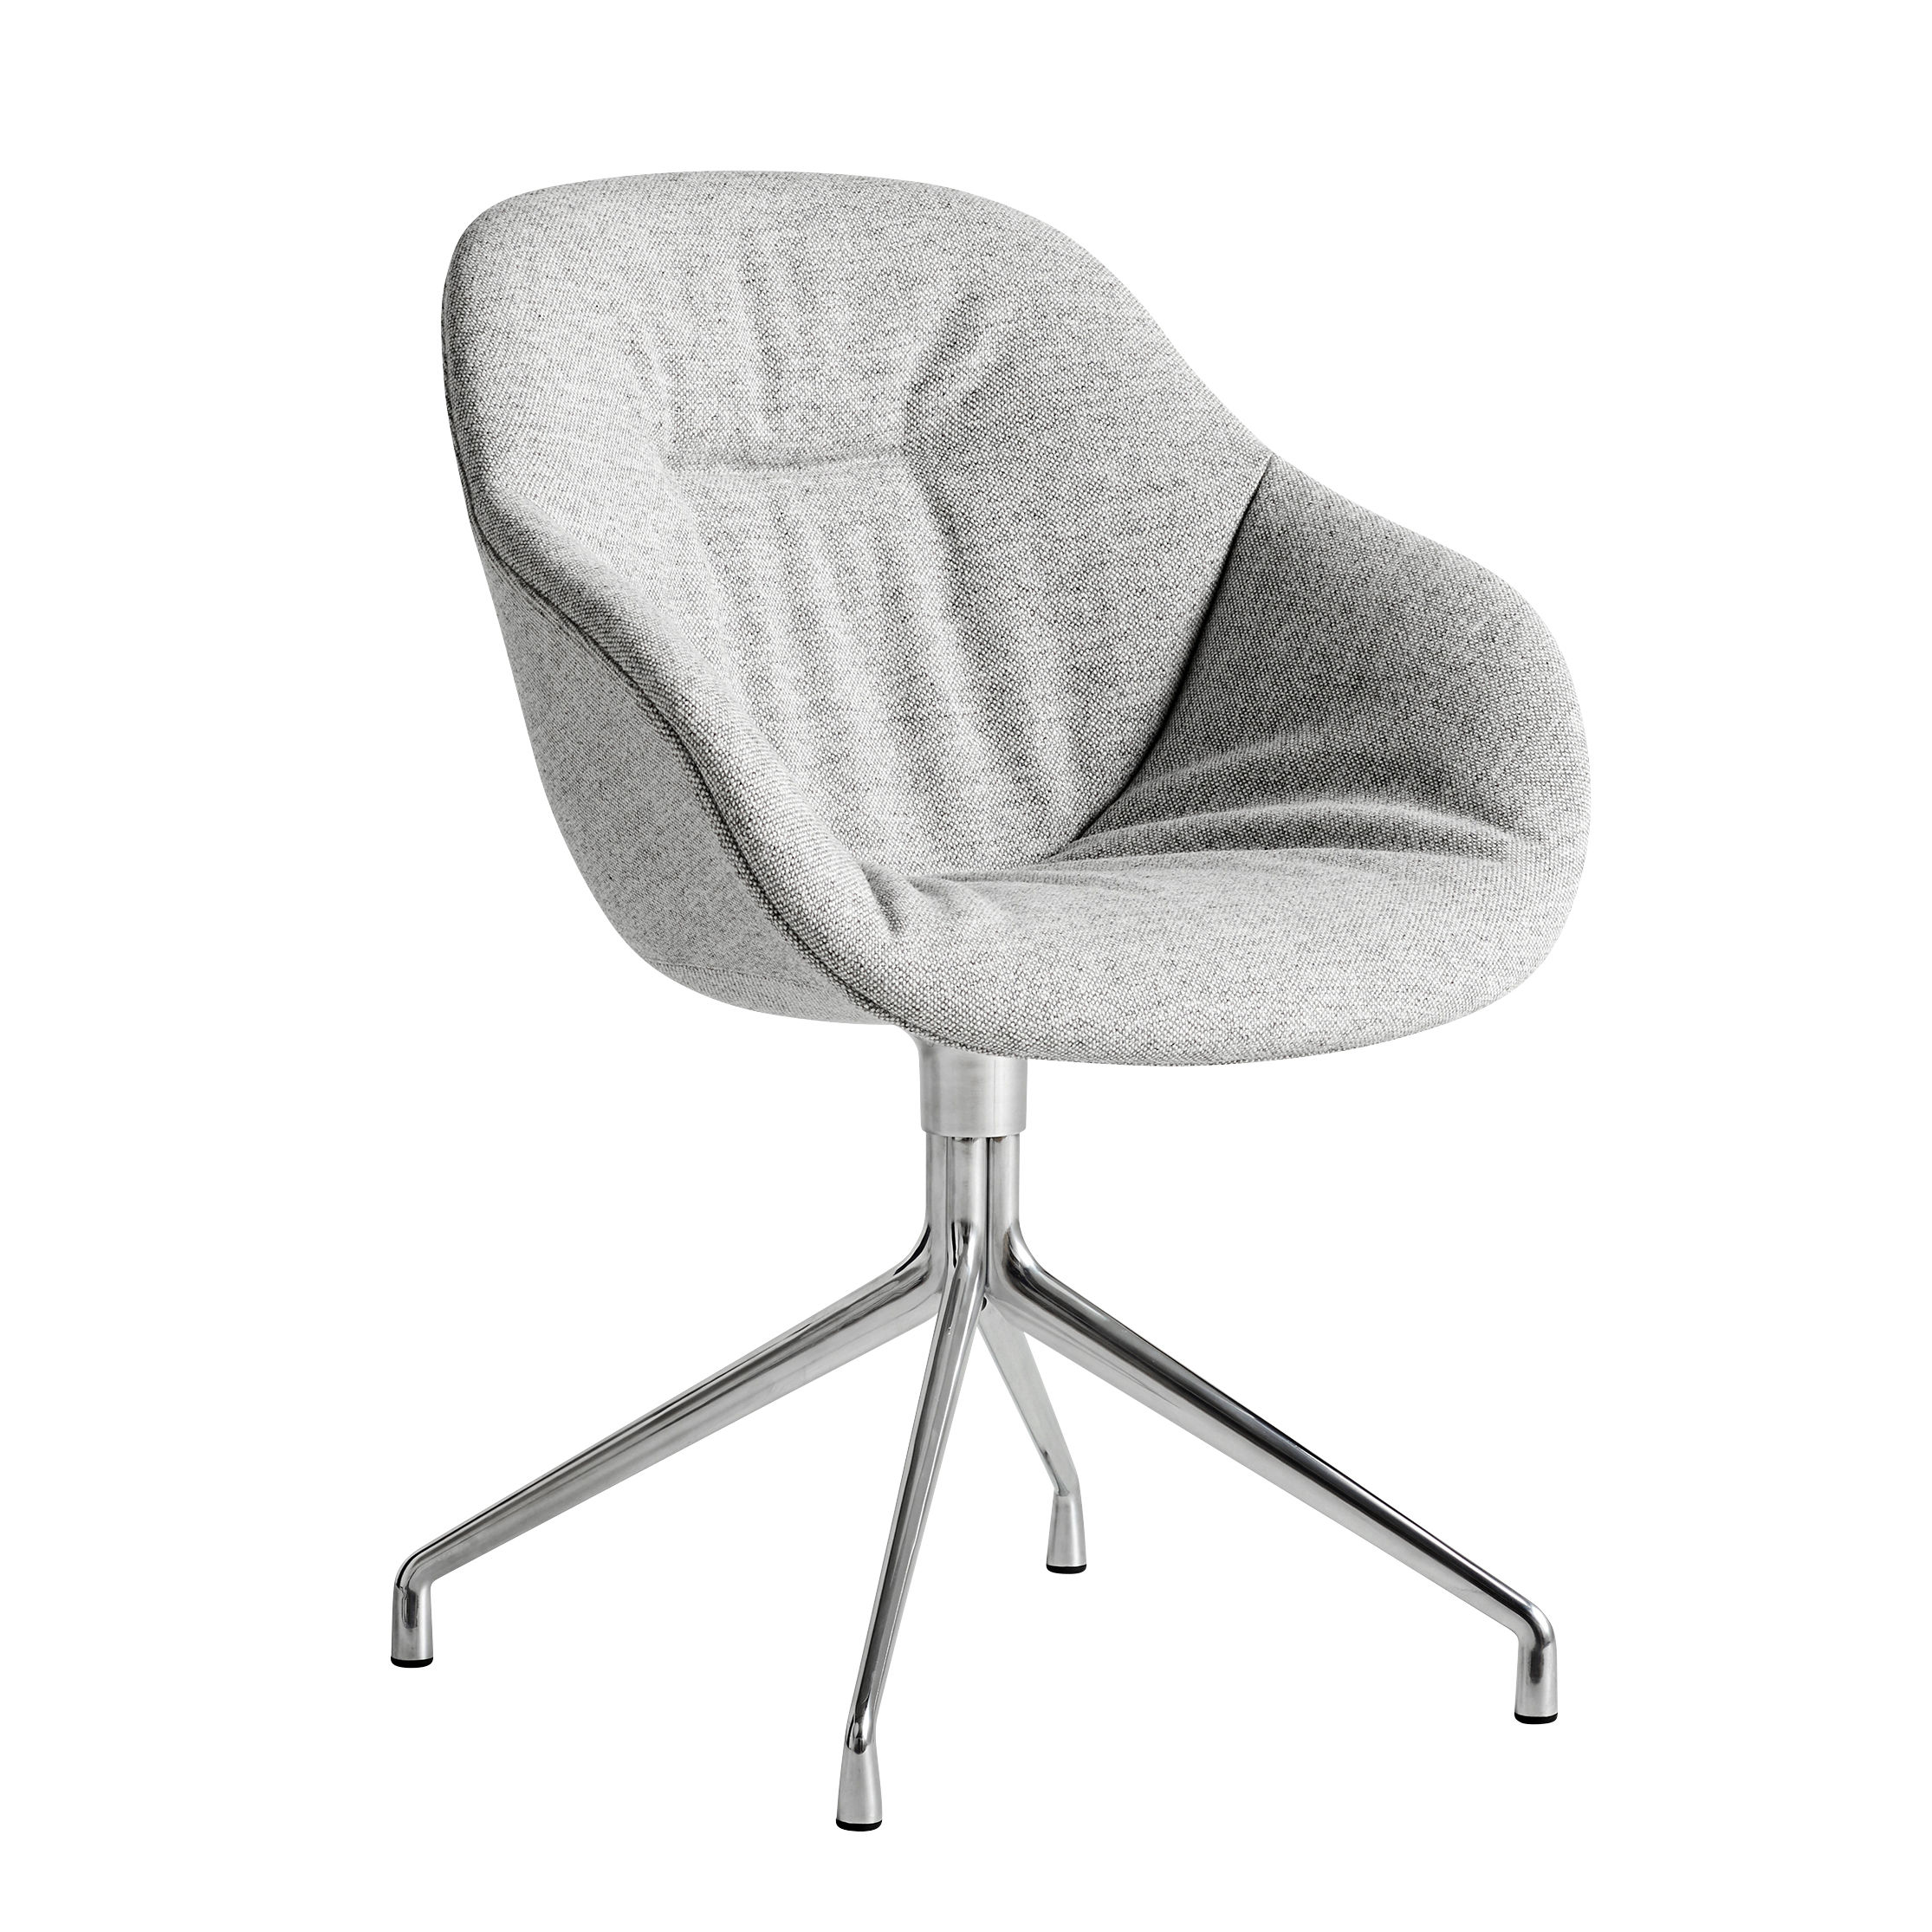 Furniture - Armchairs - About a chair AAC121 Soft Swivel armchair - / High backrest - Full quilted fabric by Hay - Grey fabric / Chrome legs -  Ouate, Fabric, Polished cast aluminium, Polyurethane foam, Renforced polypropylen